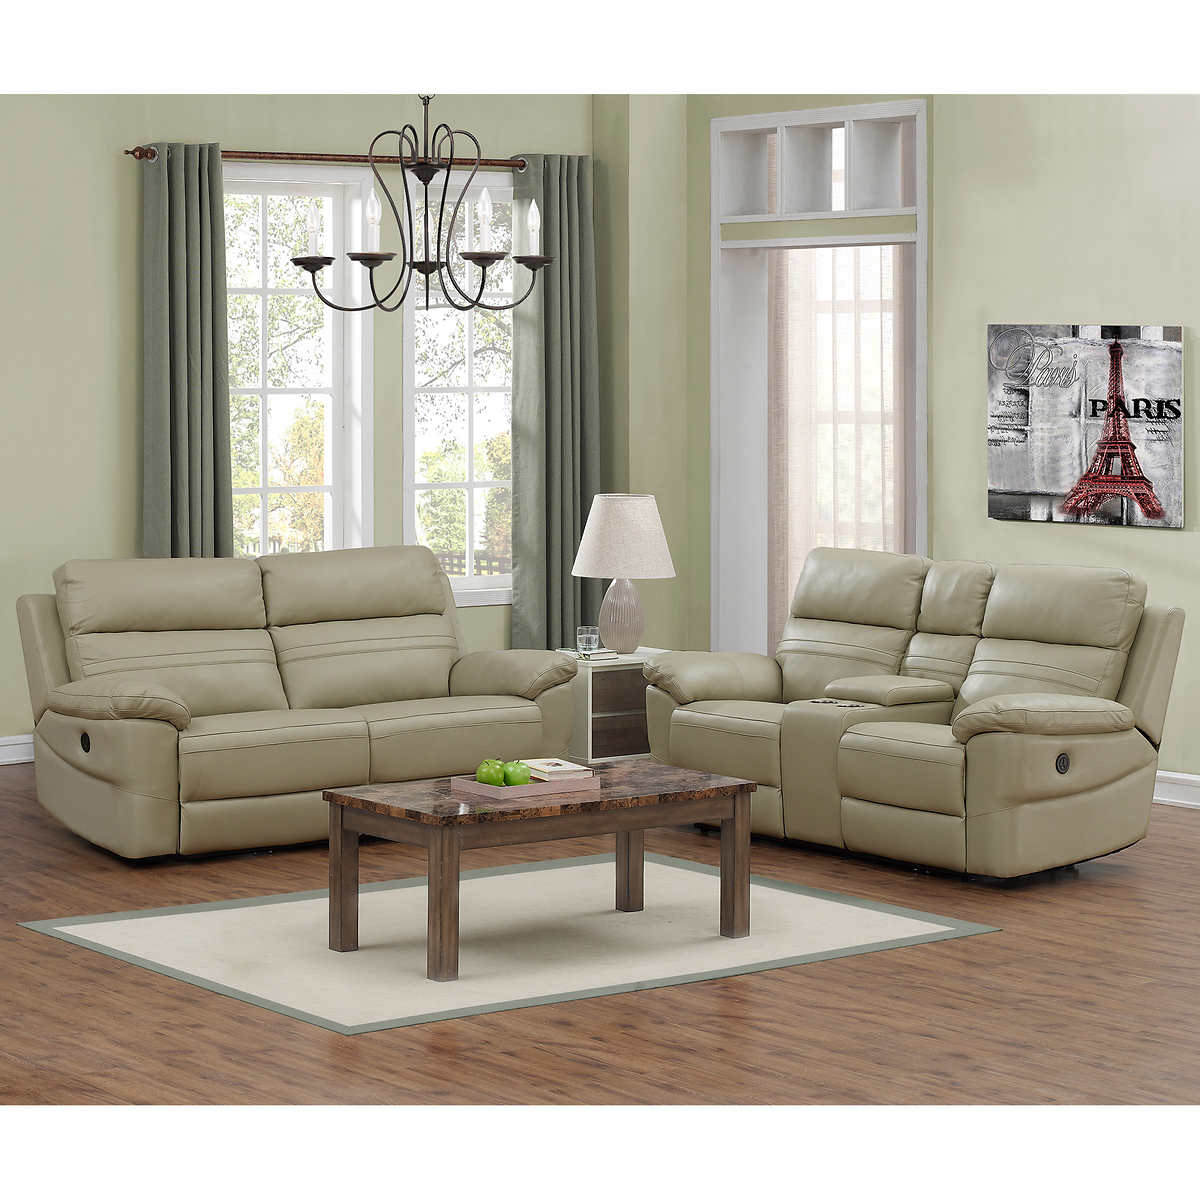 Rockhill 2-piece Top Grain Leather Power-Reclining Living Room Set